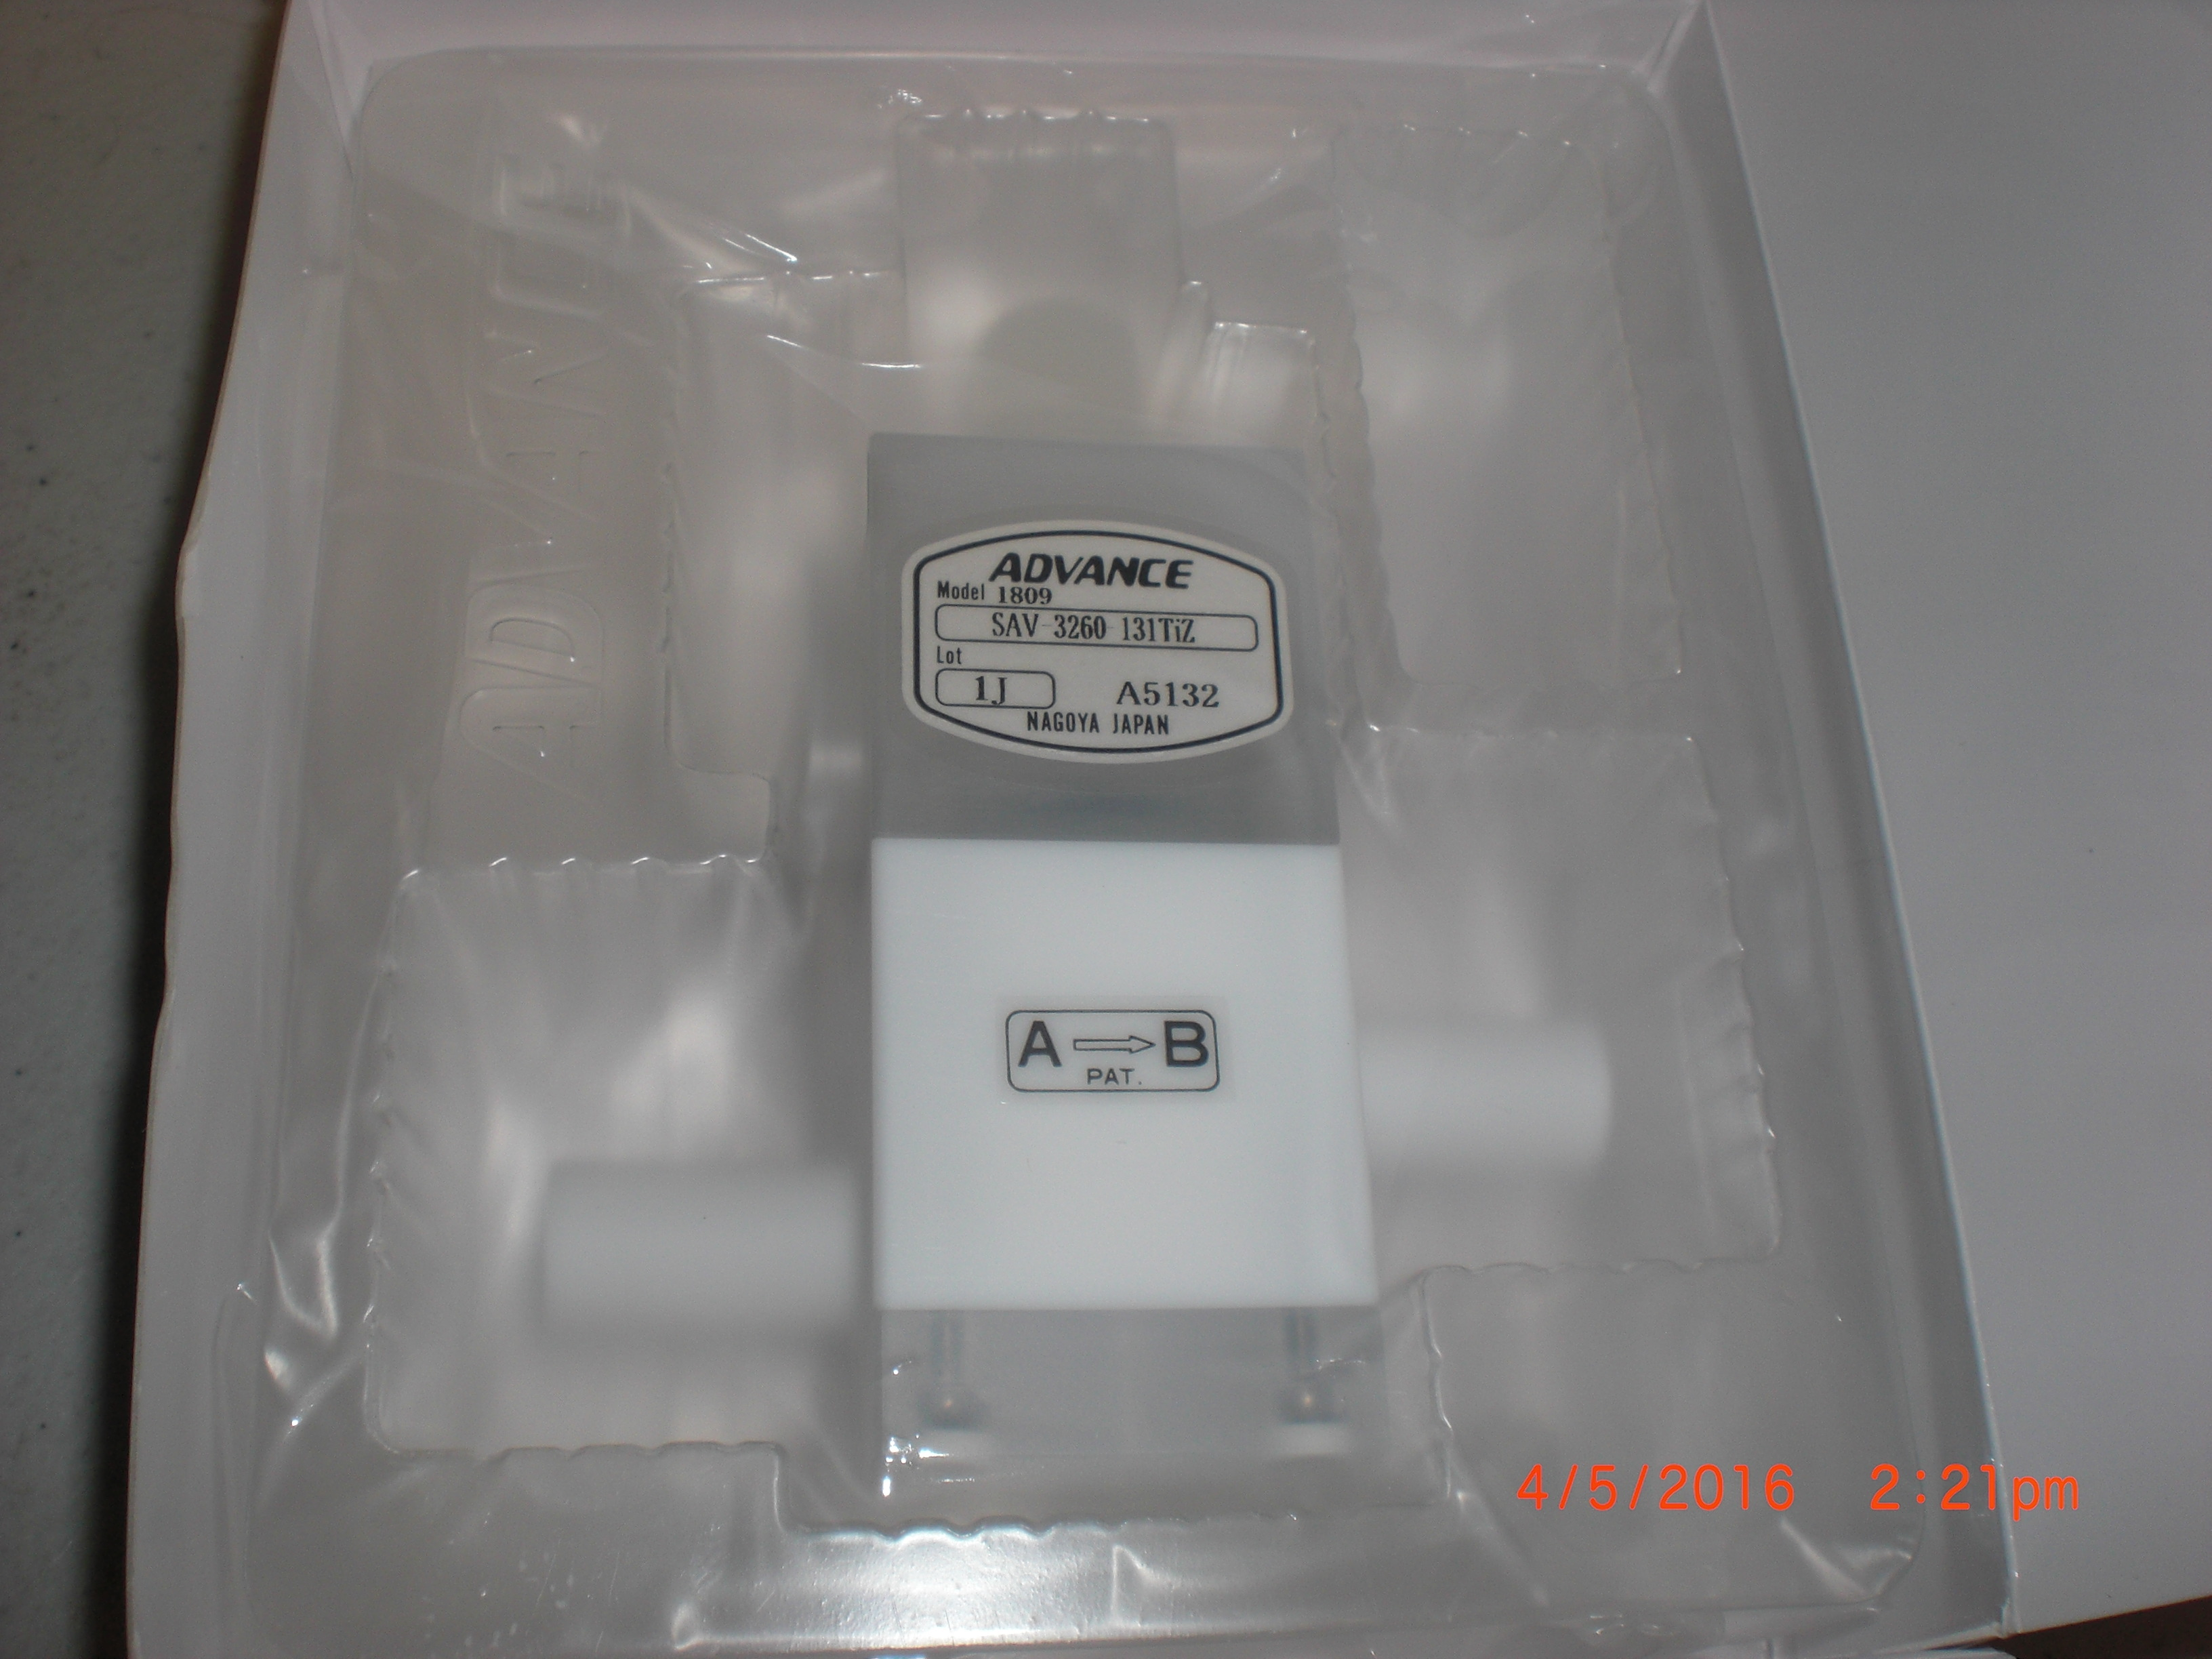 Valve ACE 3360  PTFE Teflon Pneumatic Valve adjustable flow